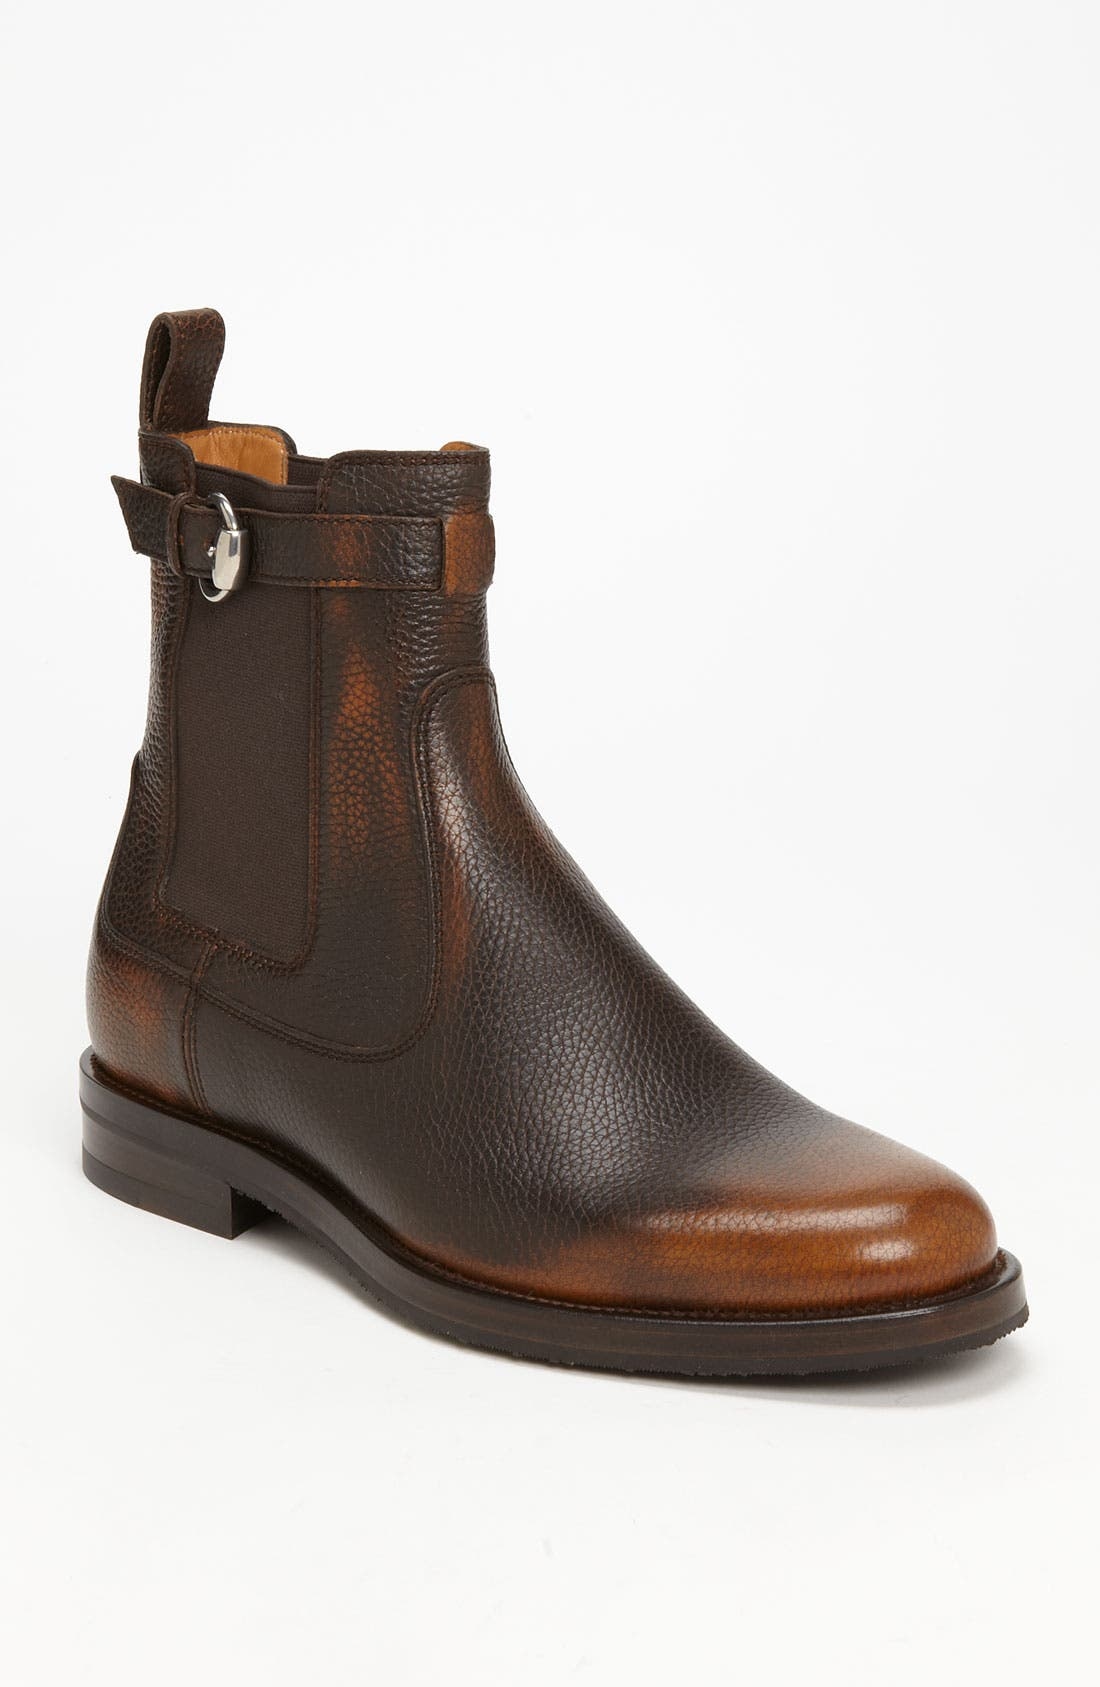 Main Image - Gucci 'Royer' Chelsea Boot